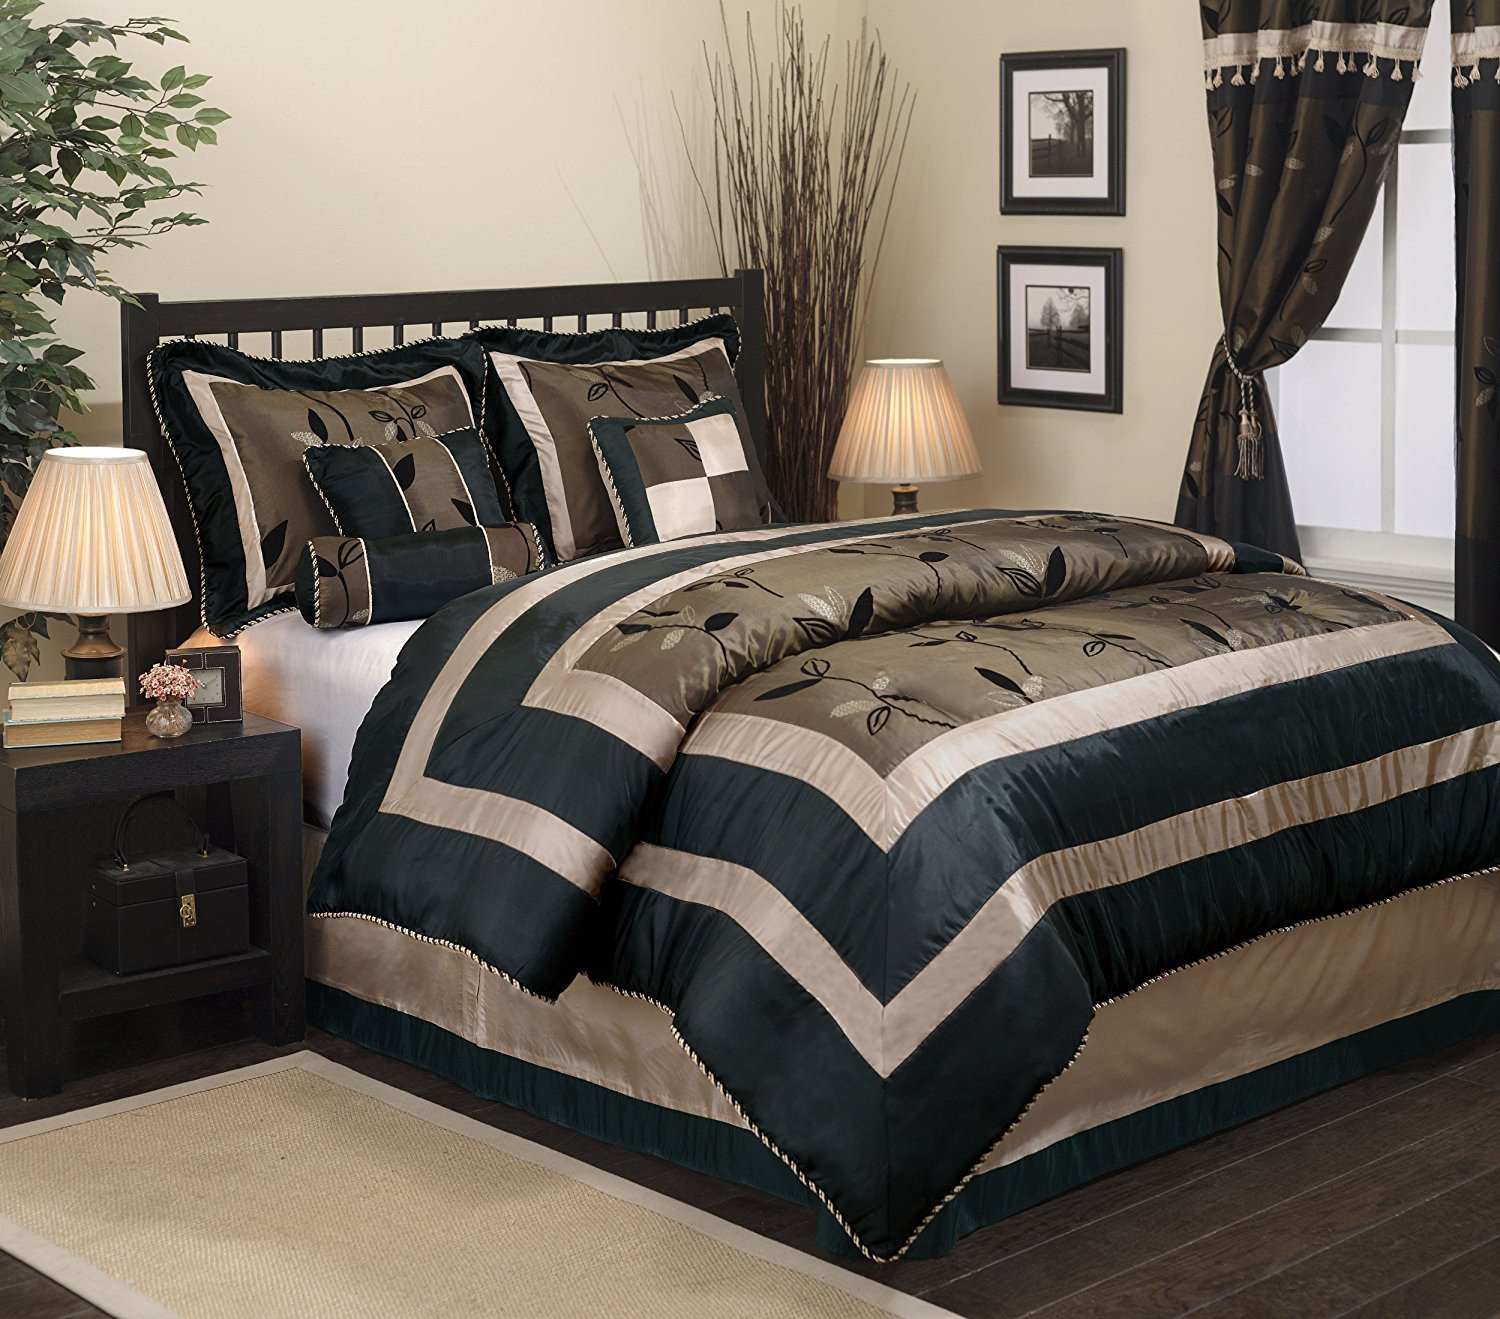 Black Bedroom Comforter Set New 63 Most Divine White Duvet Cover Double Covers King Size